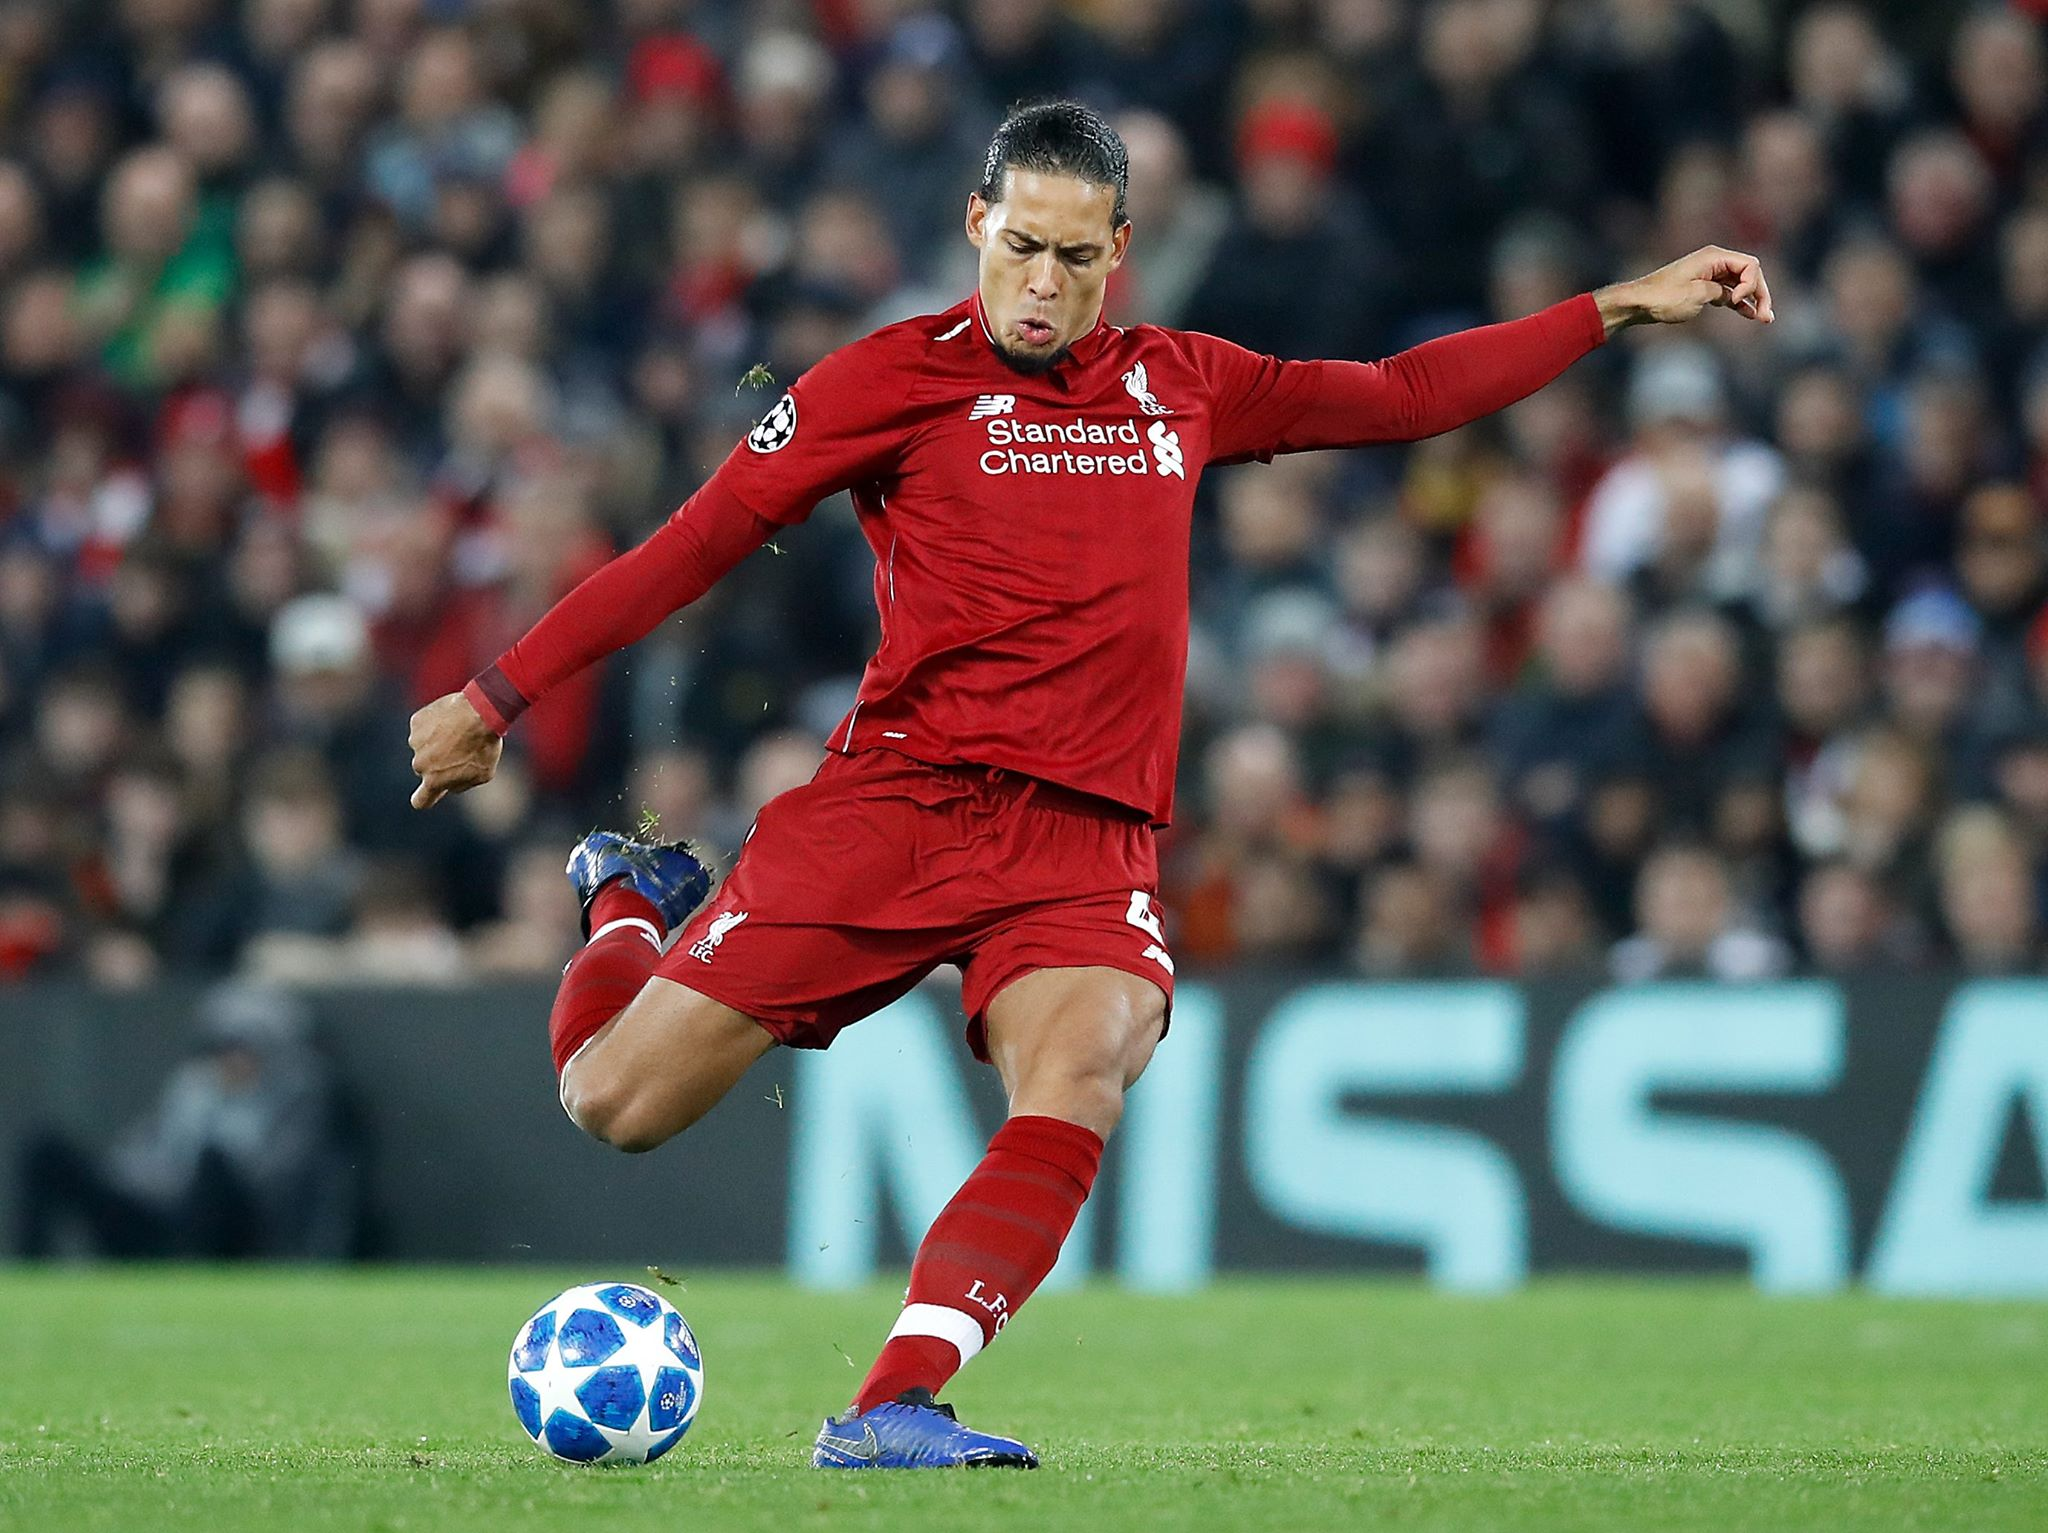 Van Dijk claims Liverpool won't be scared of United